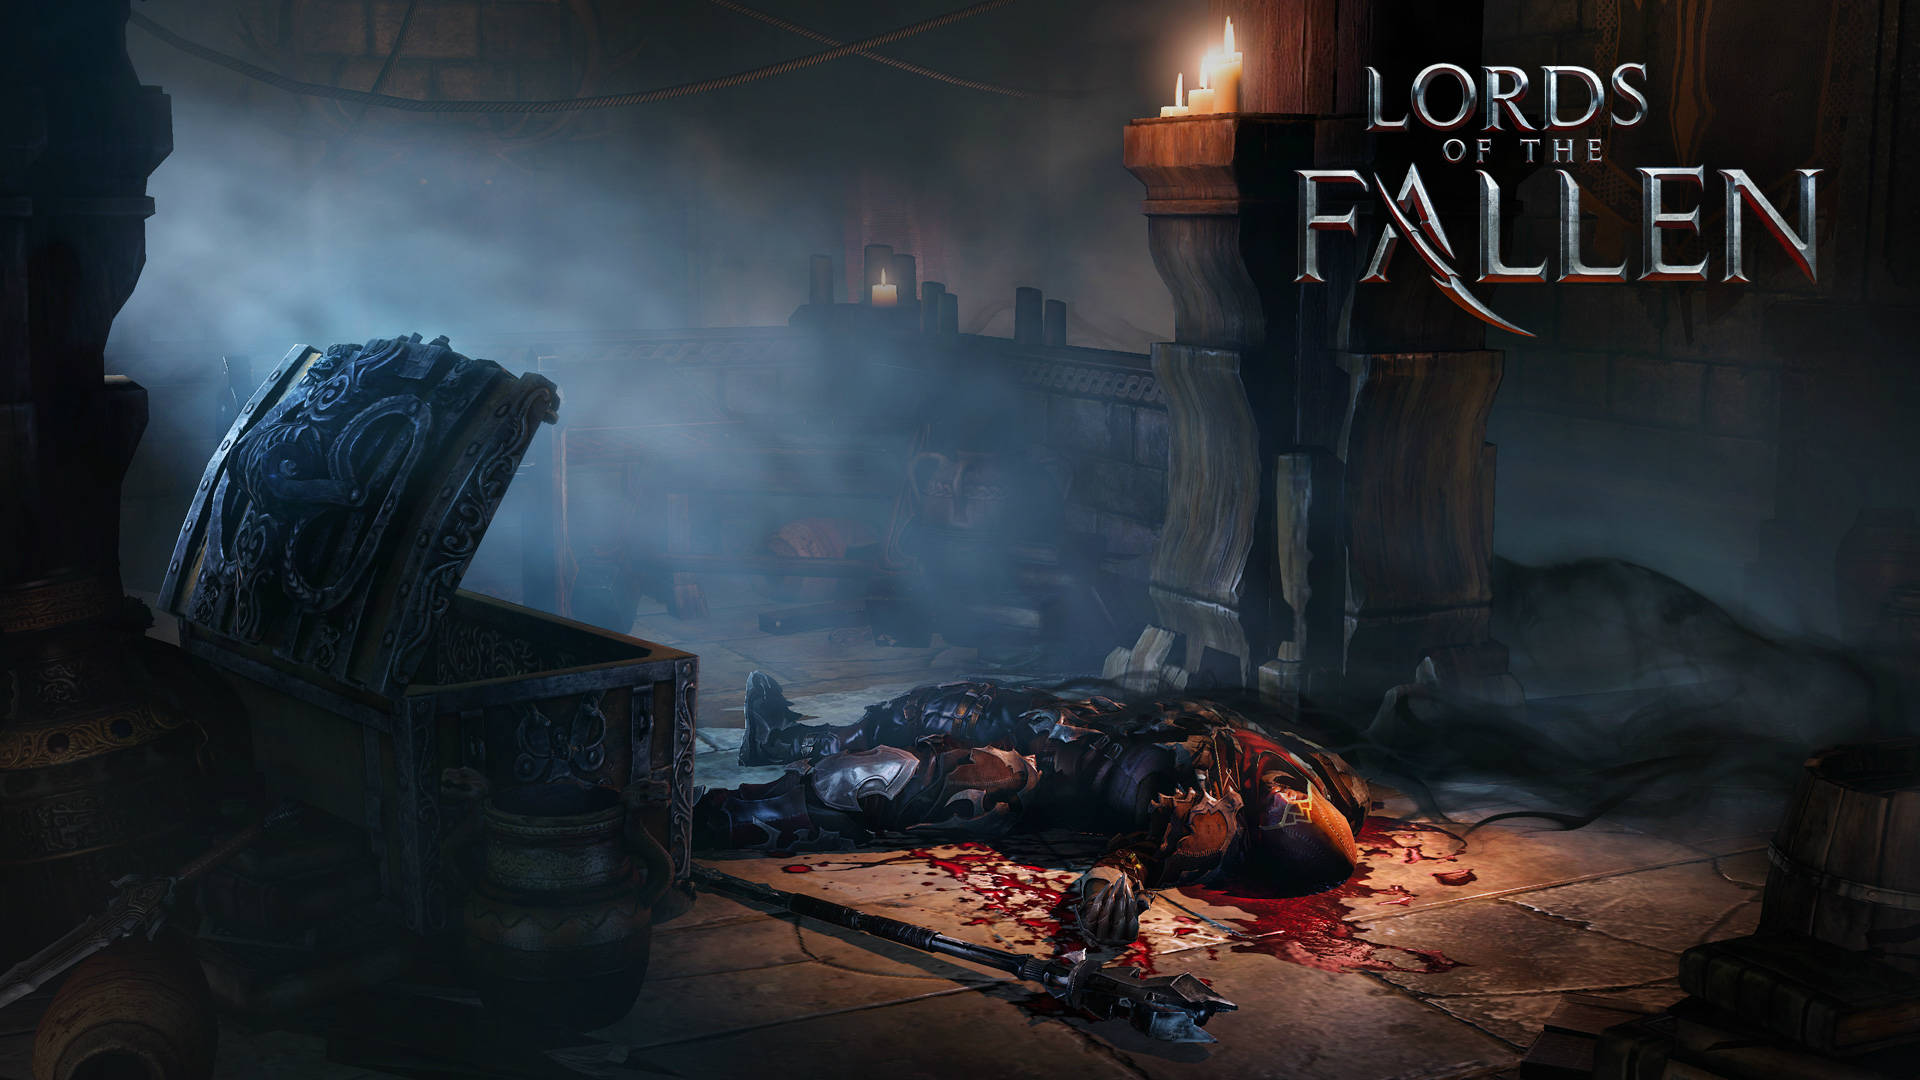 72131_V7w6nvYss9_lords_of_the_fallen_2_2